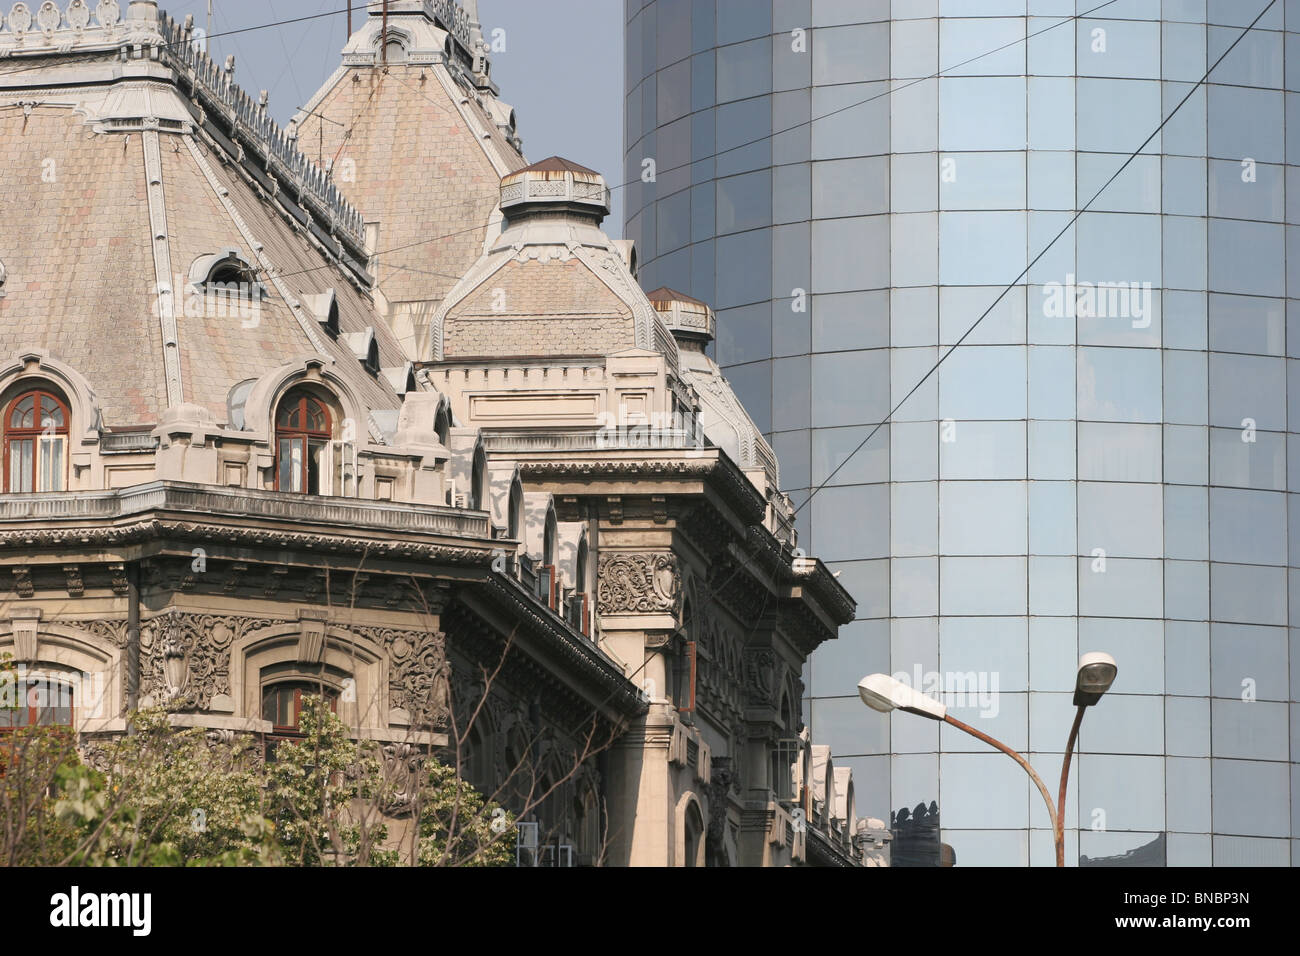 Old and new, contrasting styles of architecture in Bucharest, Romania. - Stock Image